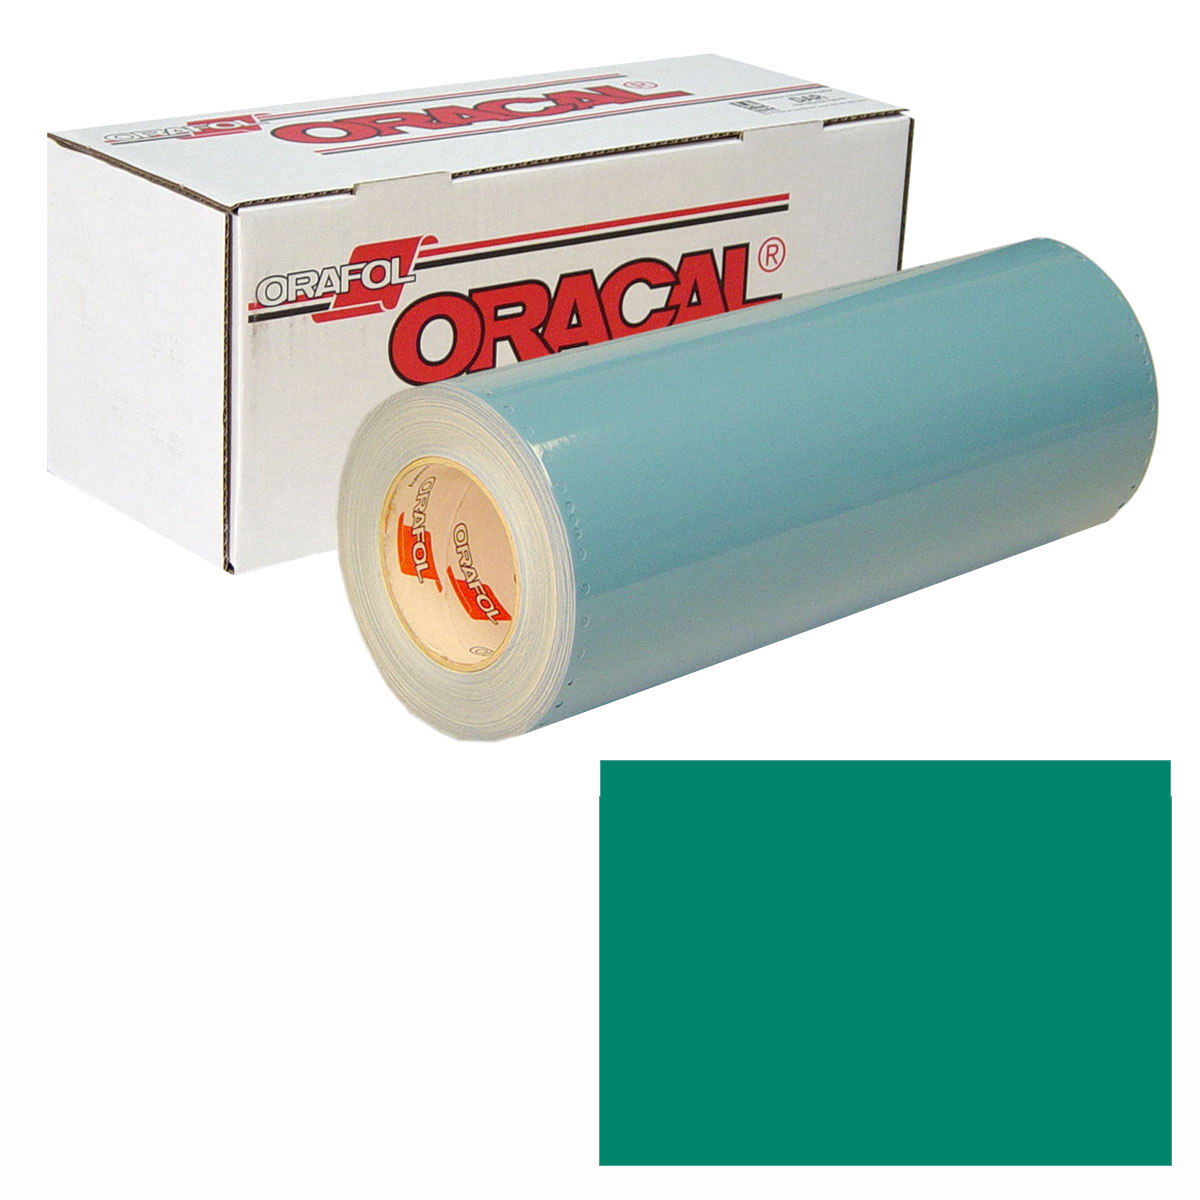 ORACAL 751 Unp 48in X 50yd 607 Turquoise Gree